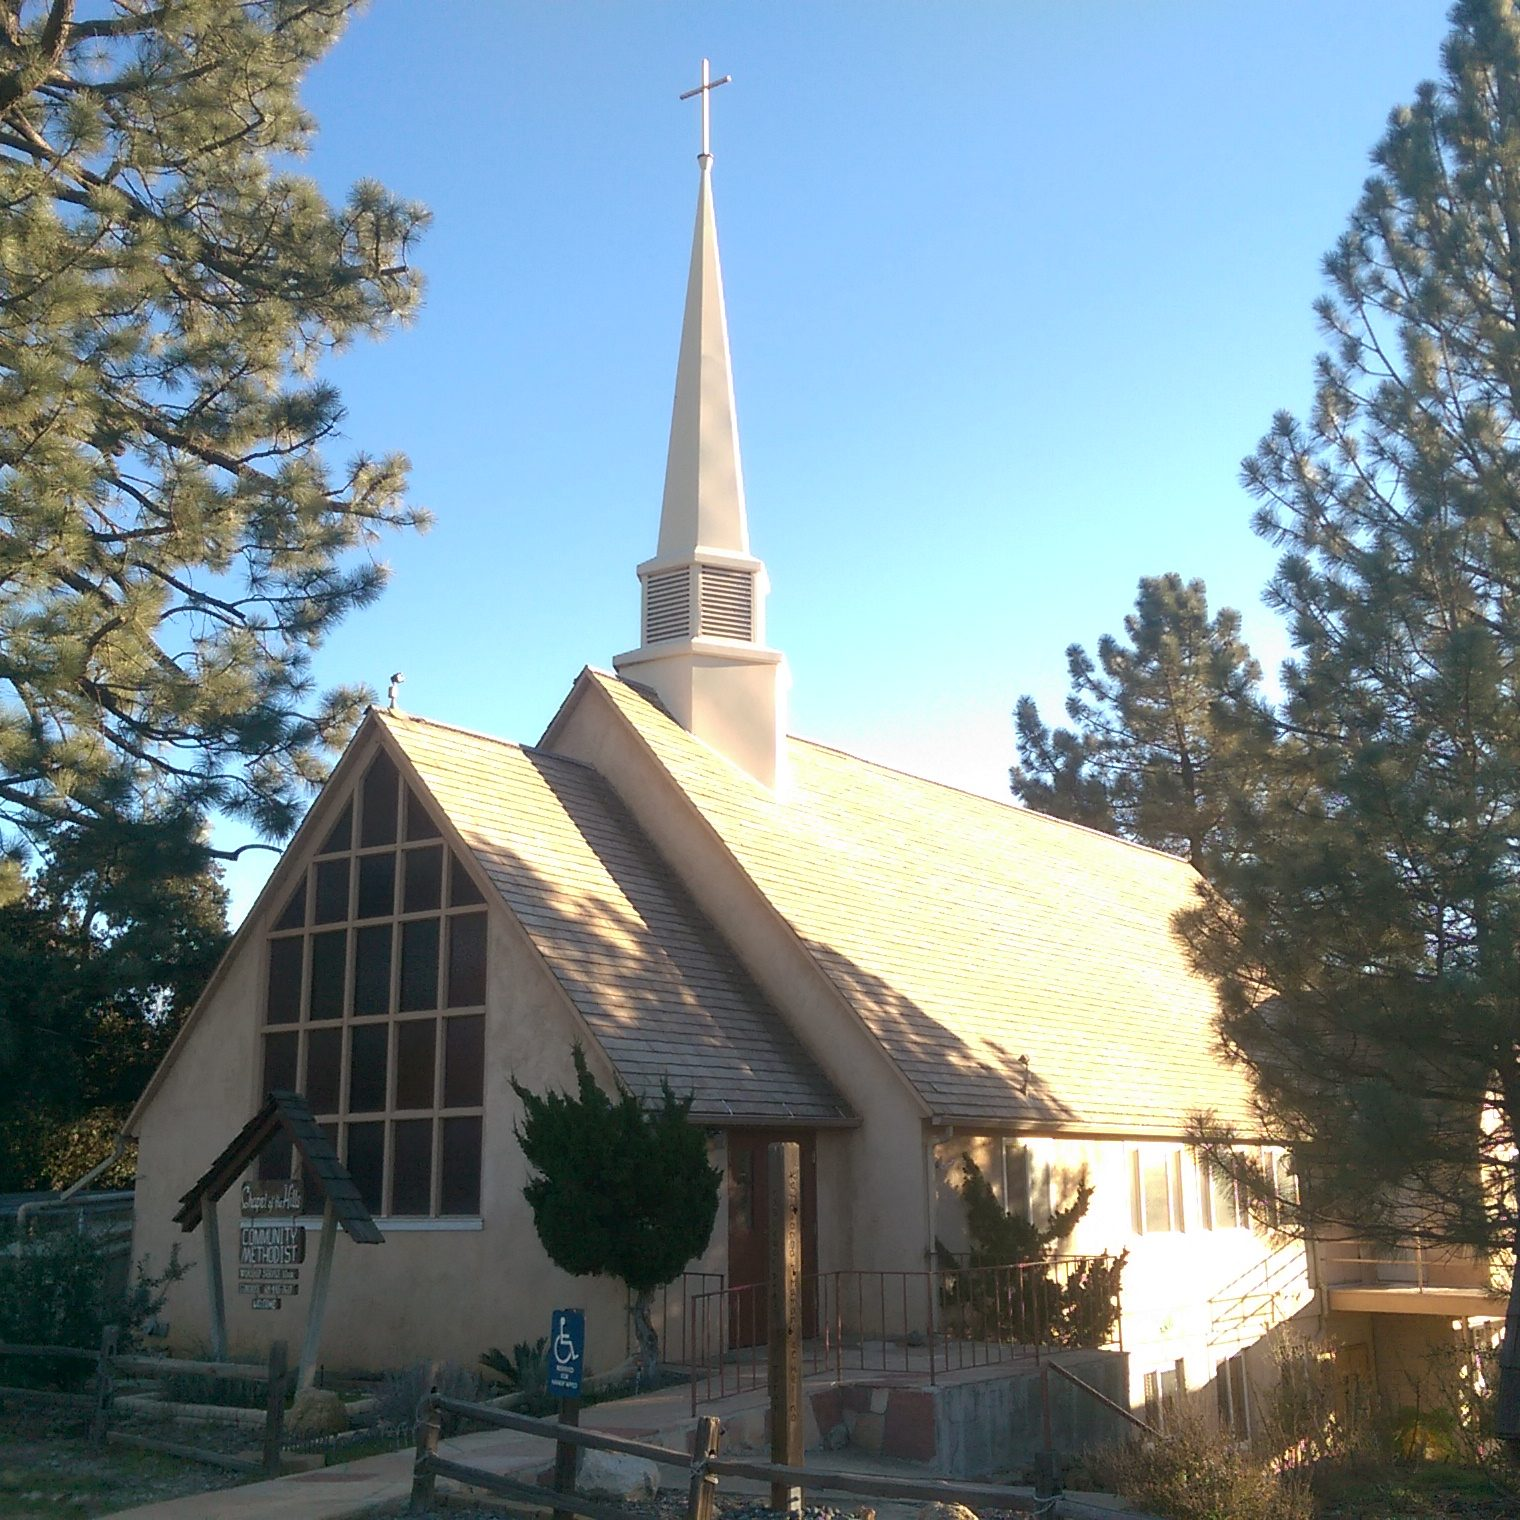 Chapel of the Hills Community United Methodist Church